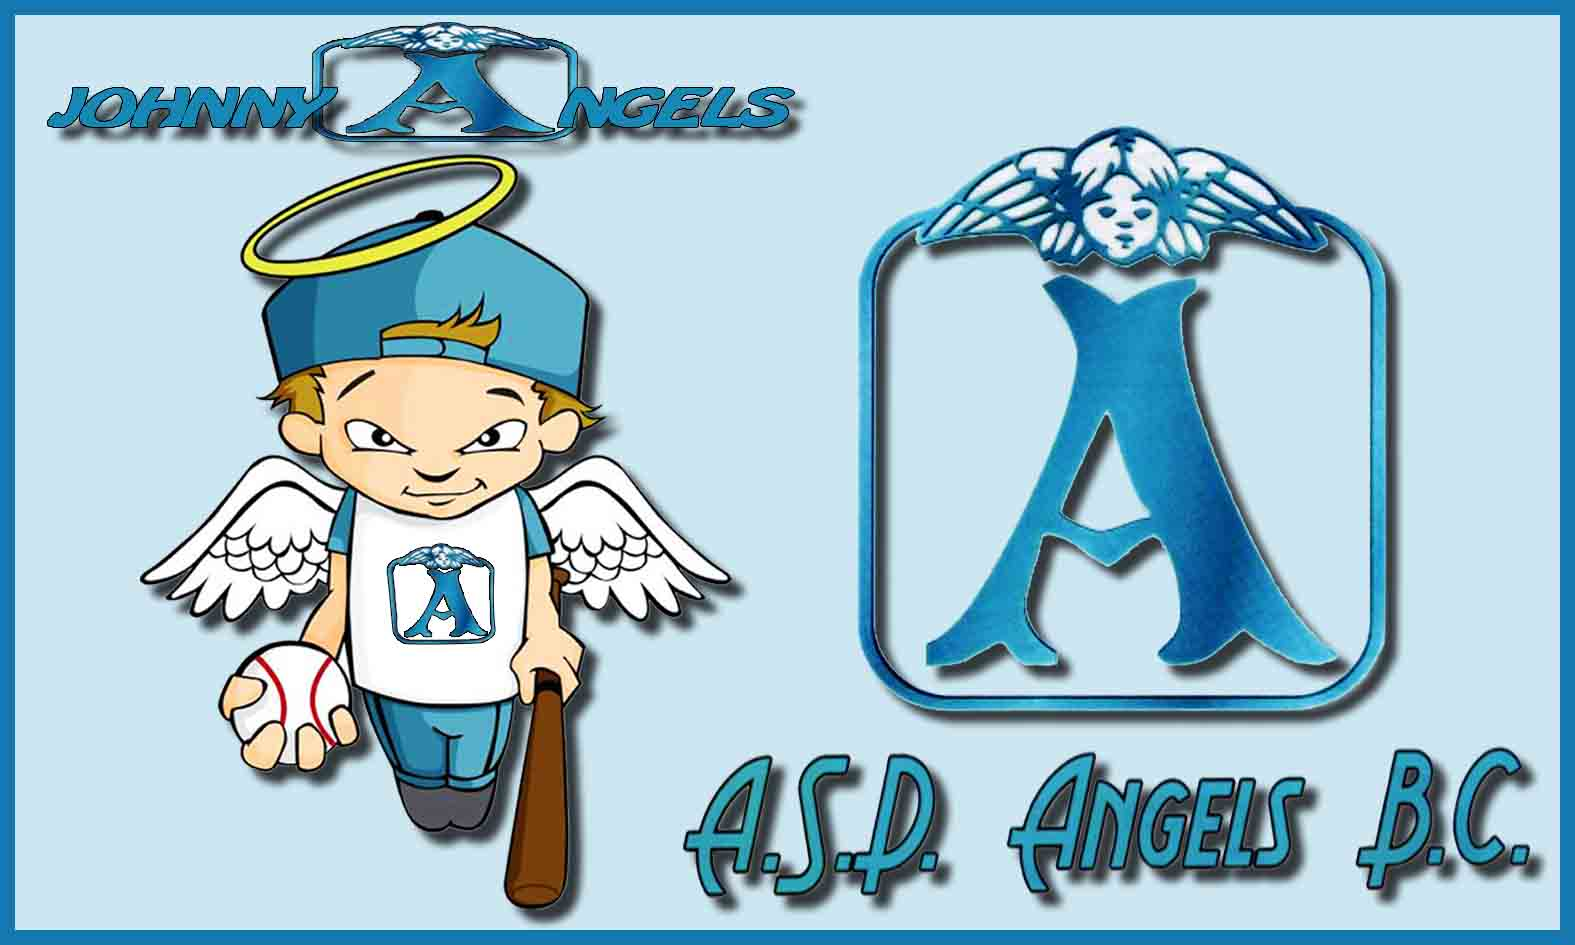 Johnny Angels